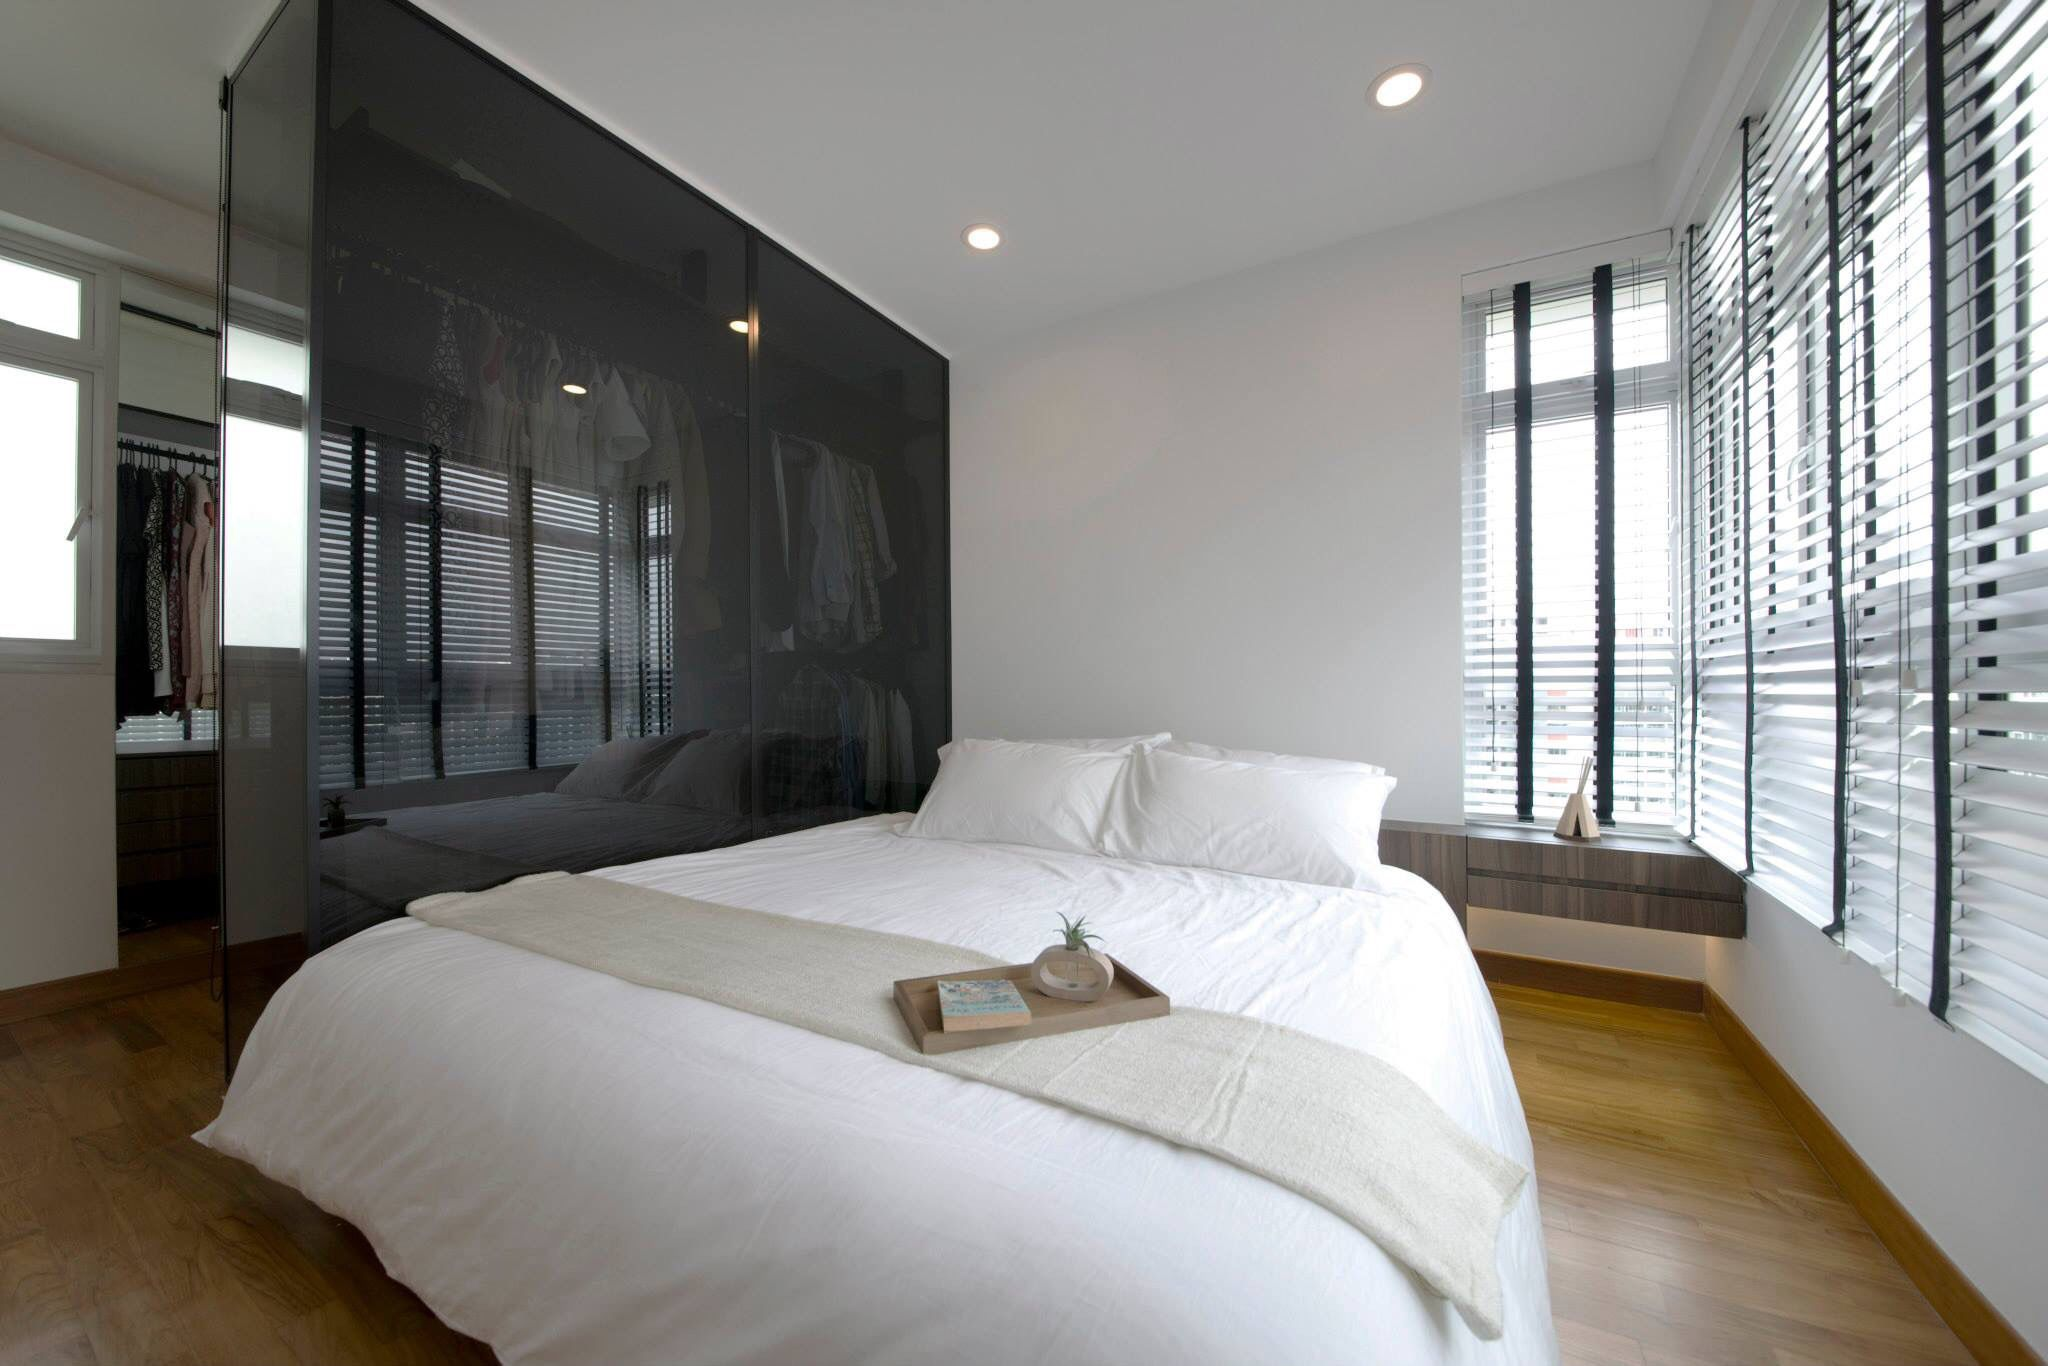 Master Bedroom View With Walk In Wardrobe For The Roof: bedroom wardrobe interior designs